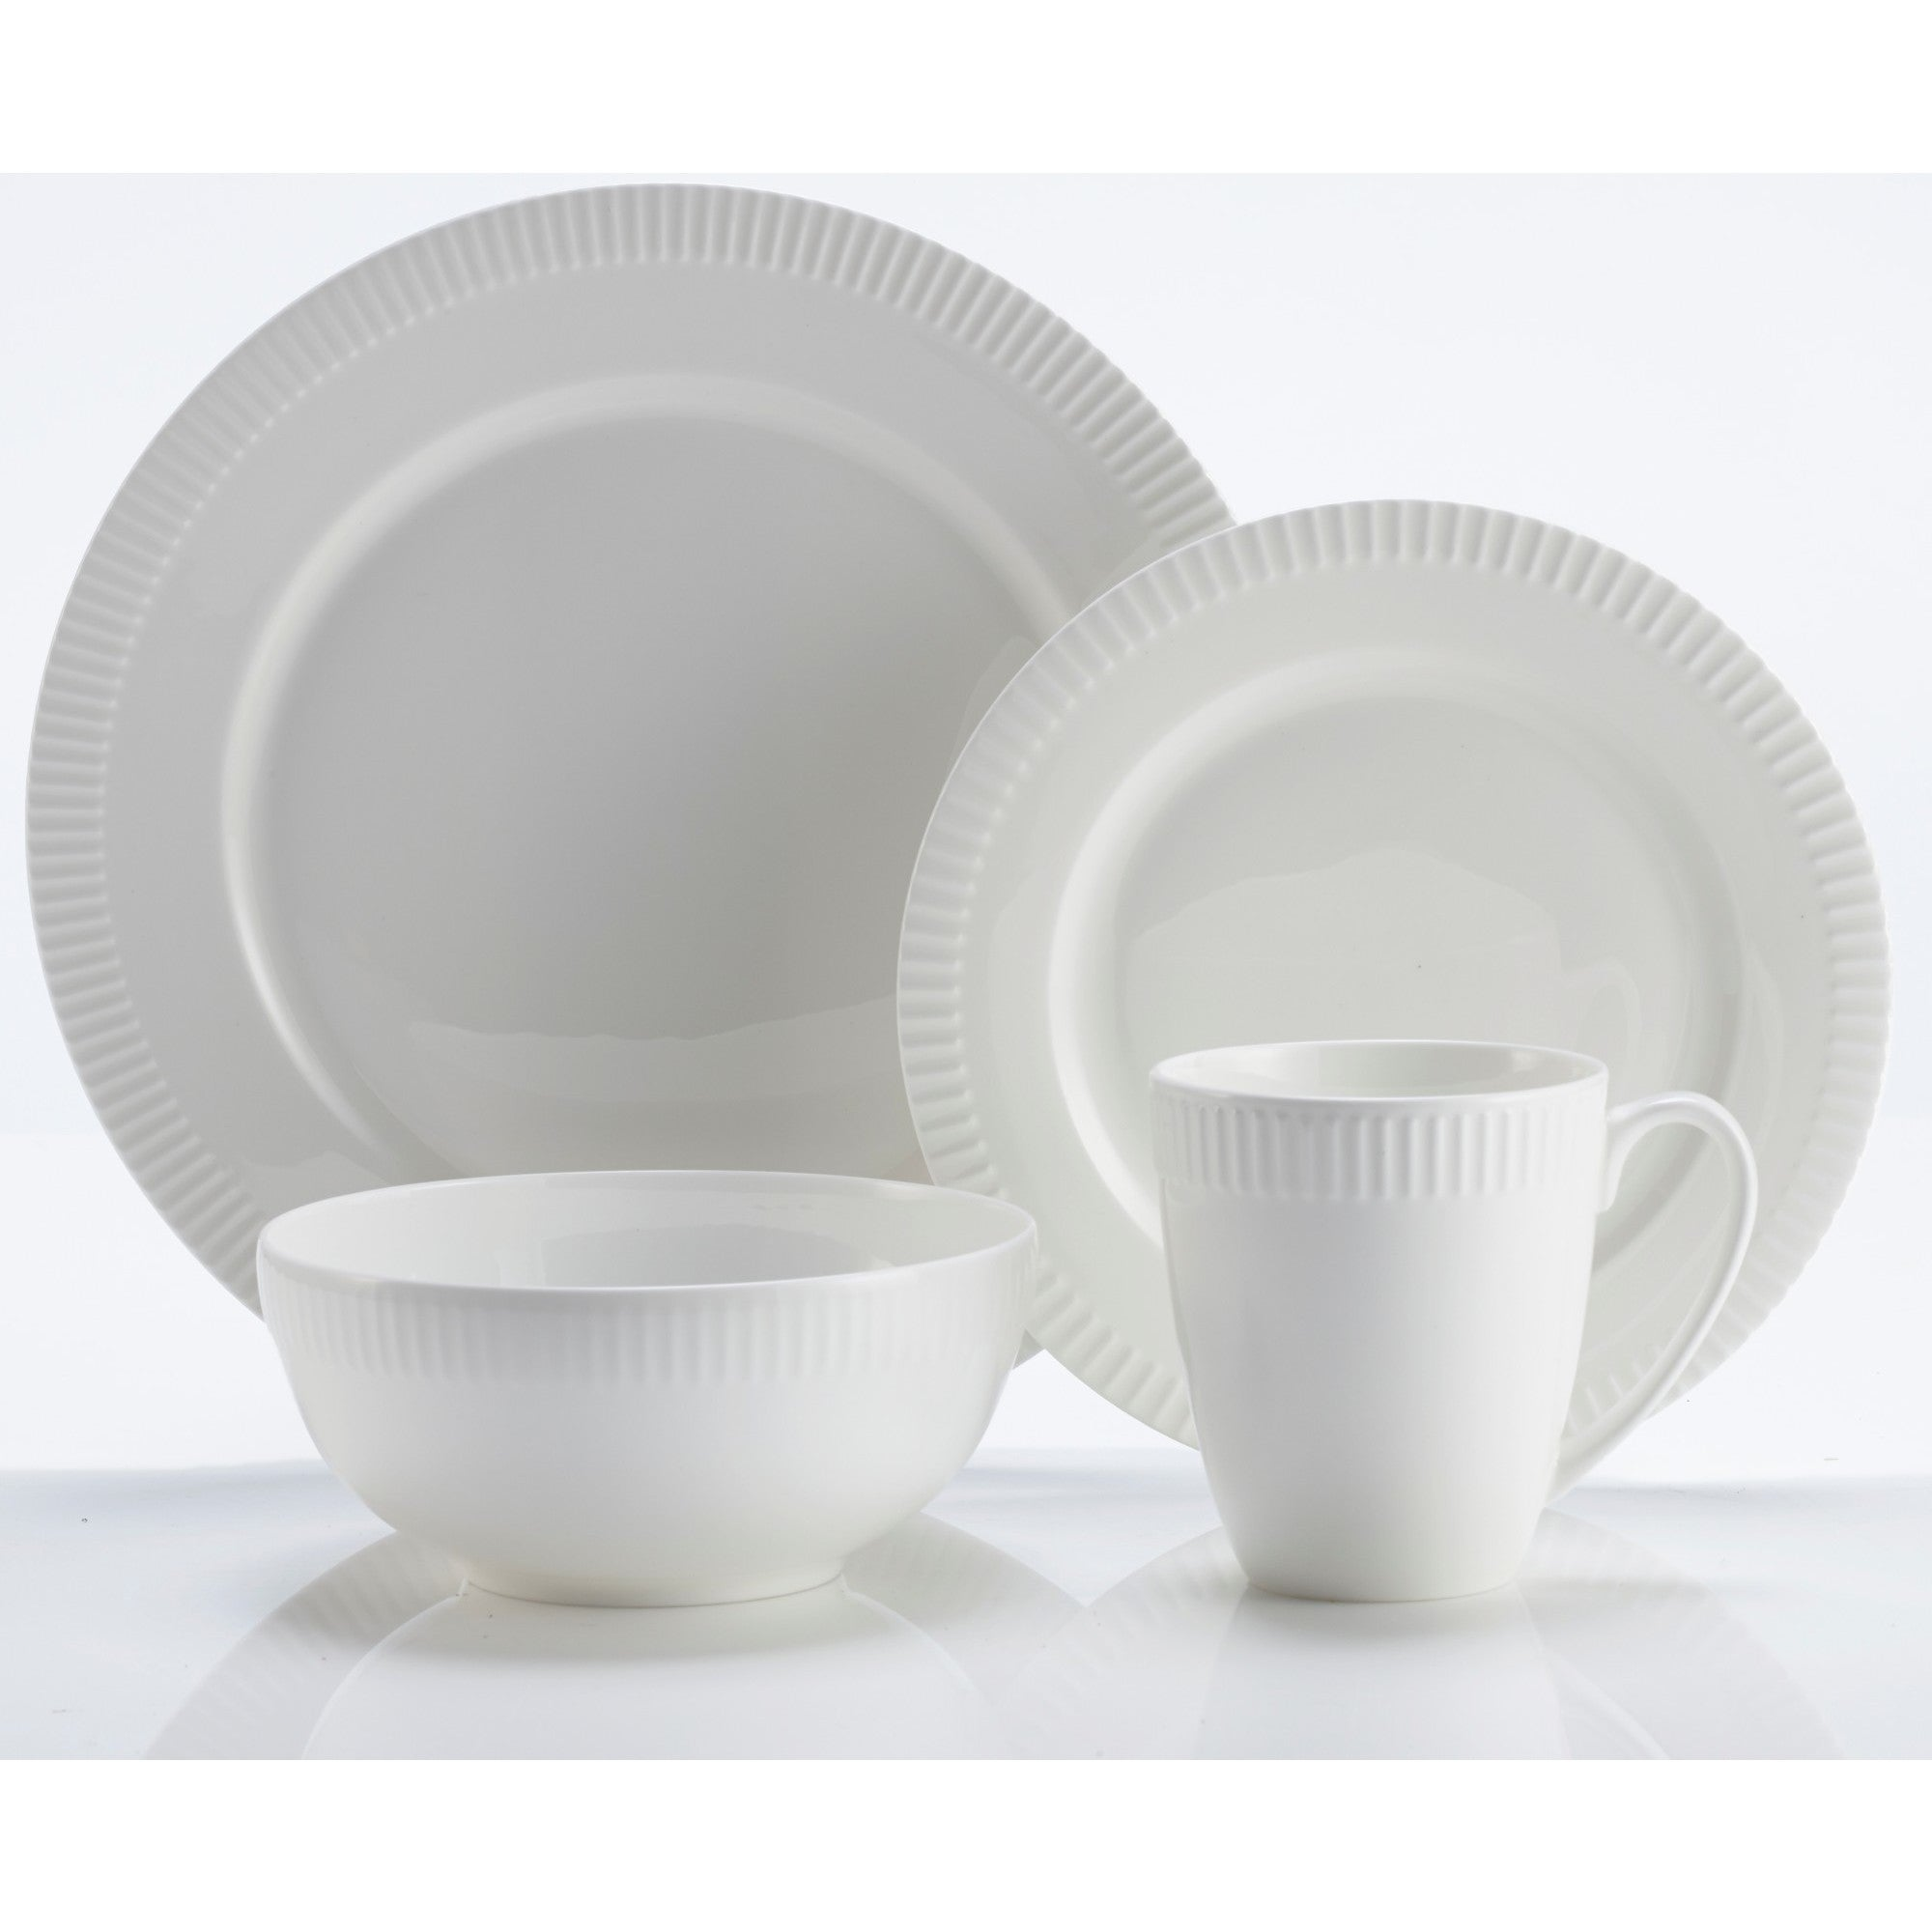 Shop Roscher 32-Piece Pie Crust China Microwave u0026 Dishwasher Safe High Quality Dinnerware Set For Stylish Everyday Dining - Free Shipping Today ...  sc 1 st  Overstock & Shop Roscher 32-Piece Pie Crust China Microwave u0026 Dishwasher Safe ...